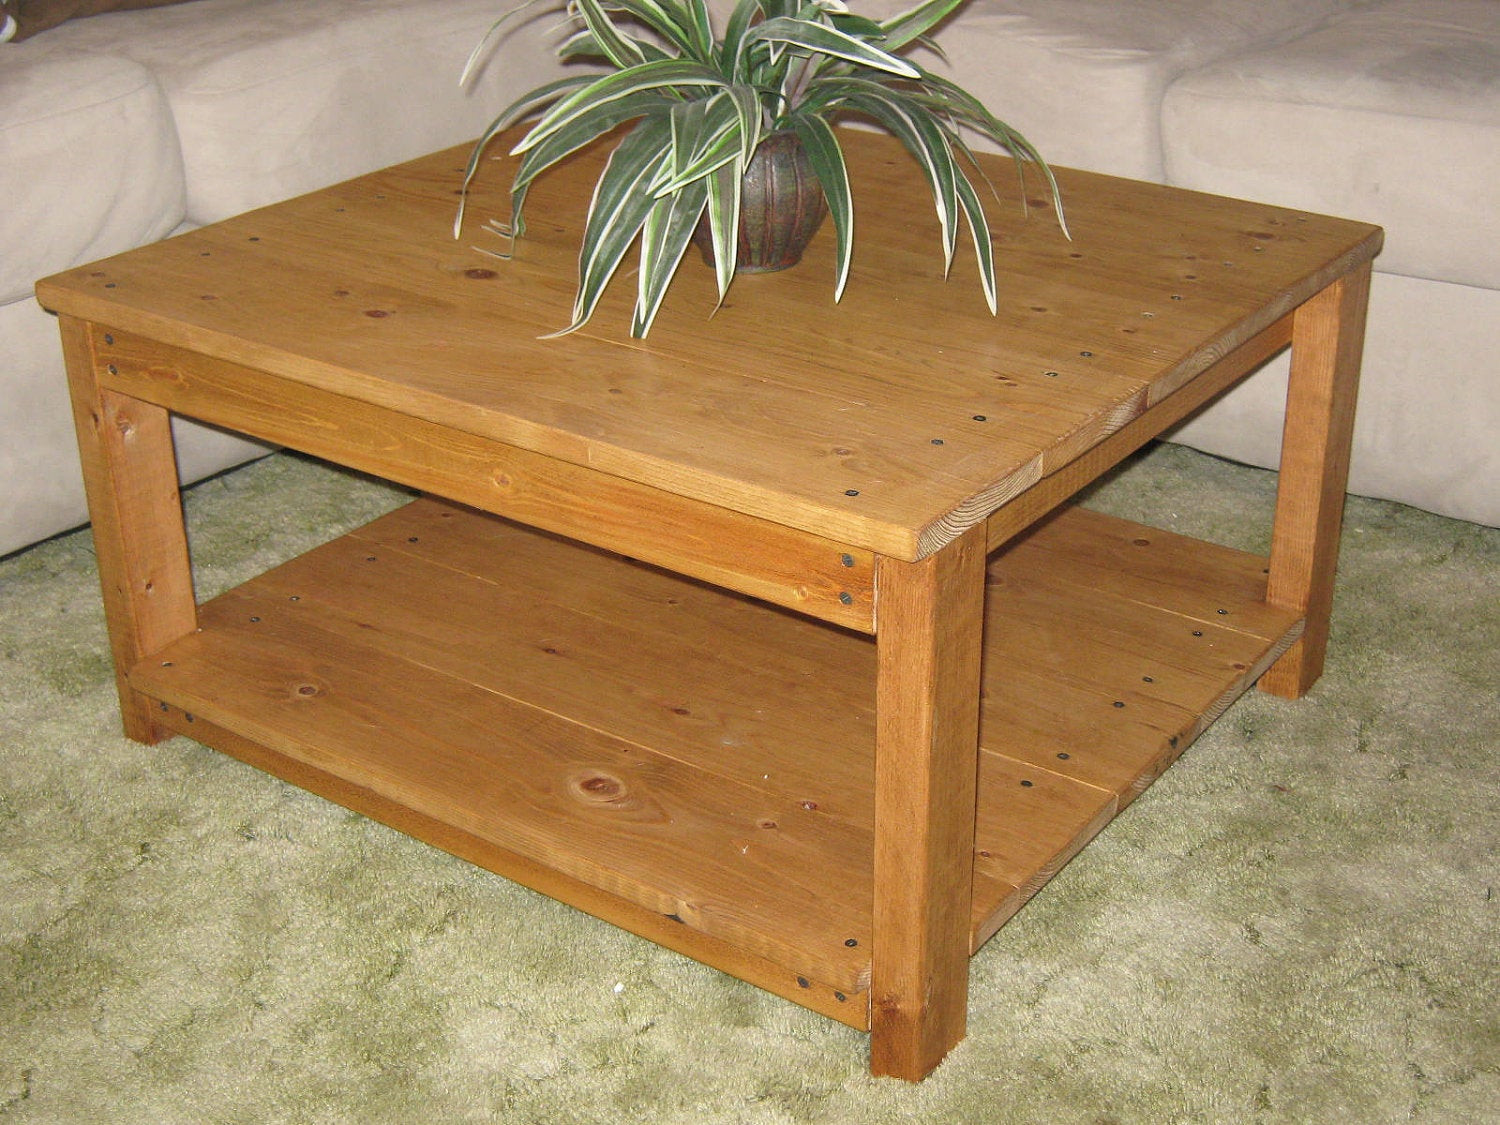 Best ideas about Coffee Table Plans . Save or Pin DIY PLANS to make Square Wooden Coffee Table by wingstoshop Now.